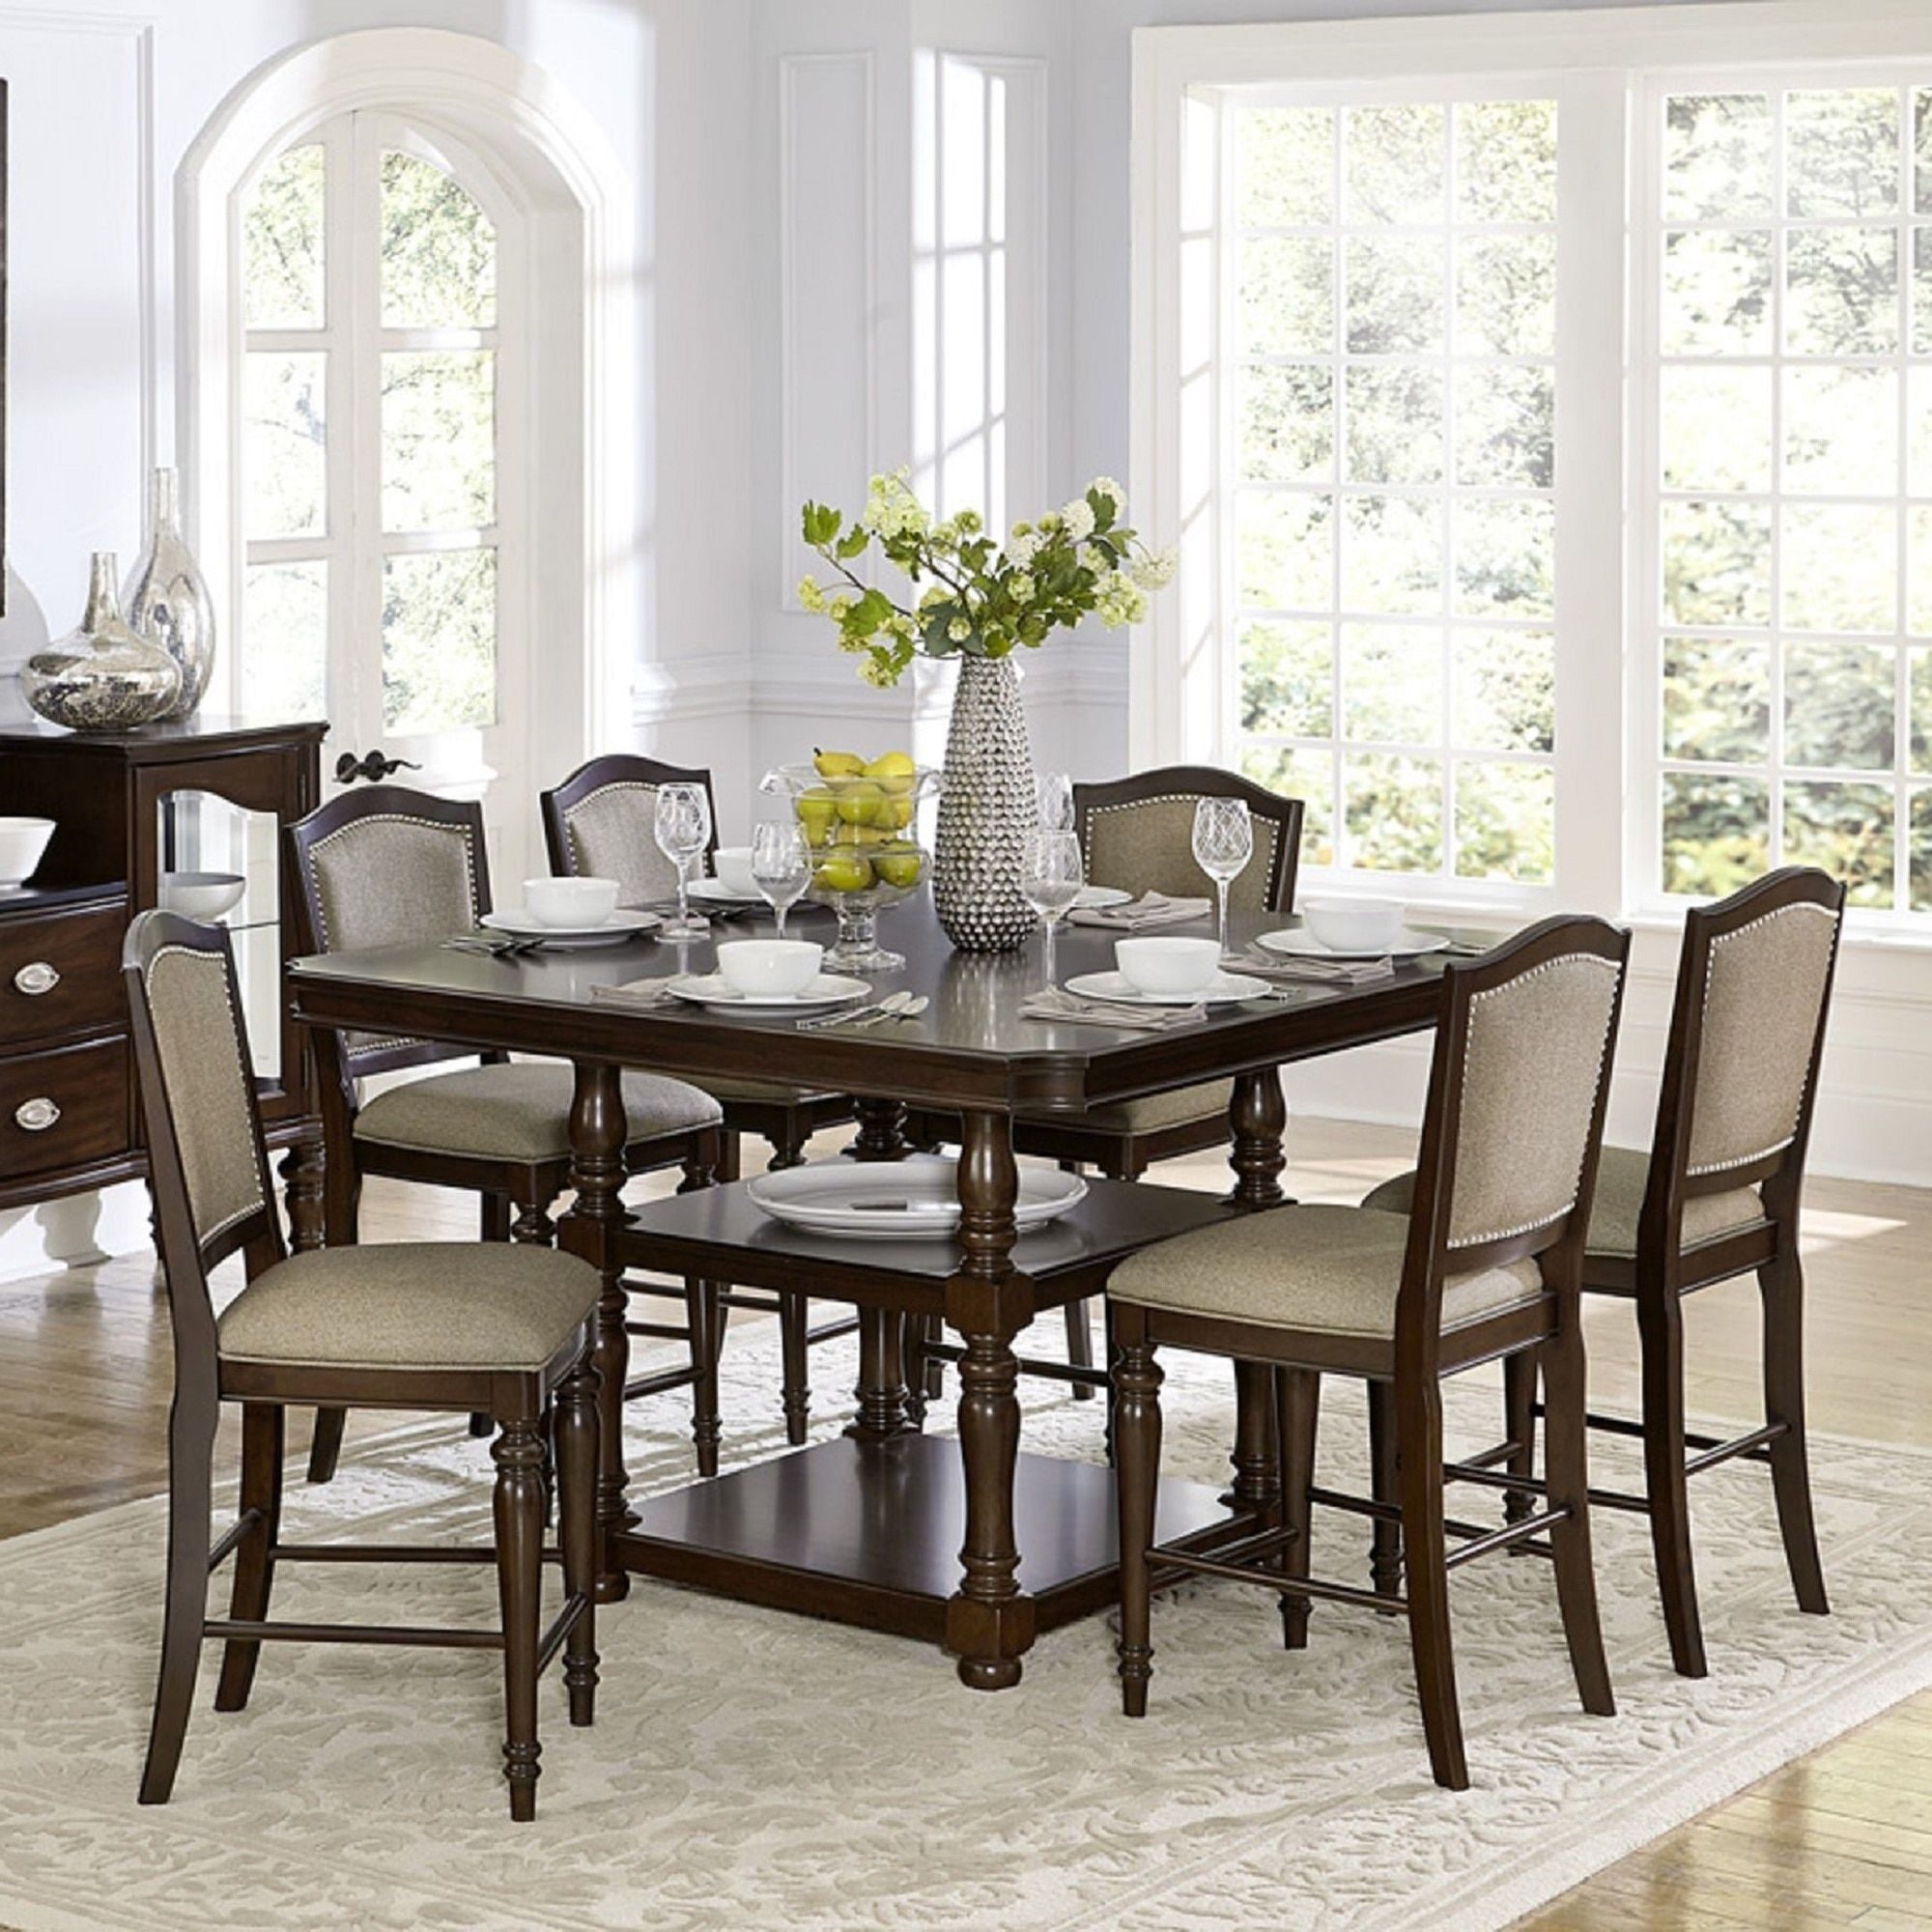 8001500Rectangletraditional Dining Room Sets Find The Dining Endearing Traditional Dining Room Set Design Ideas